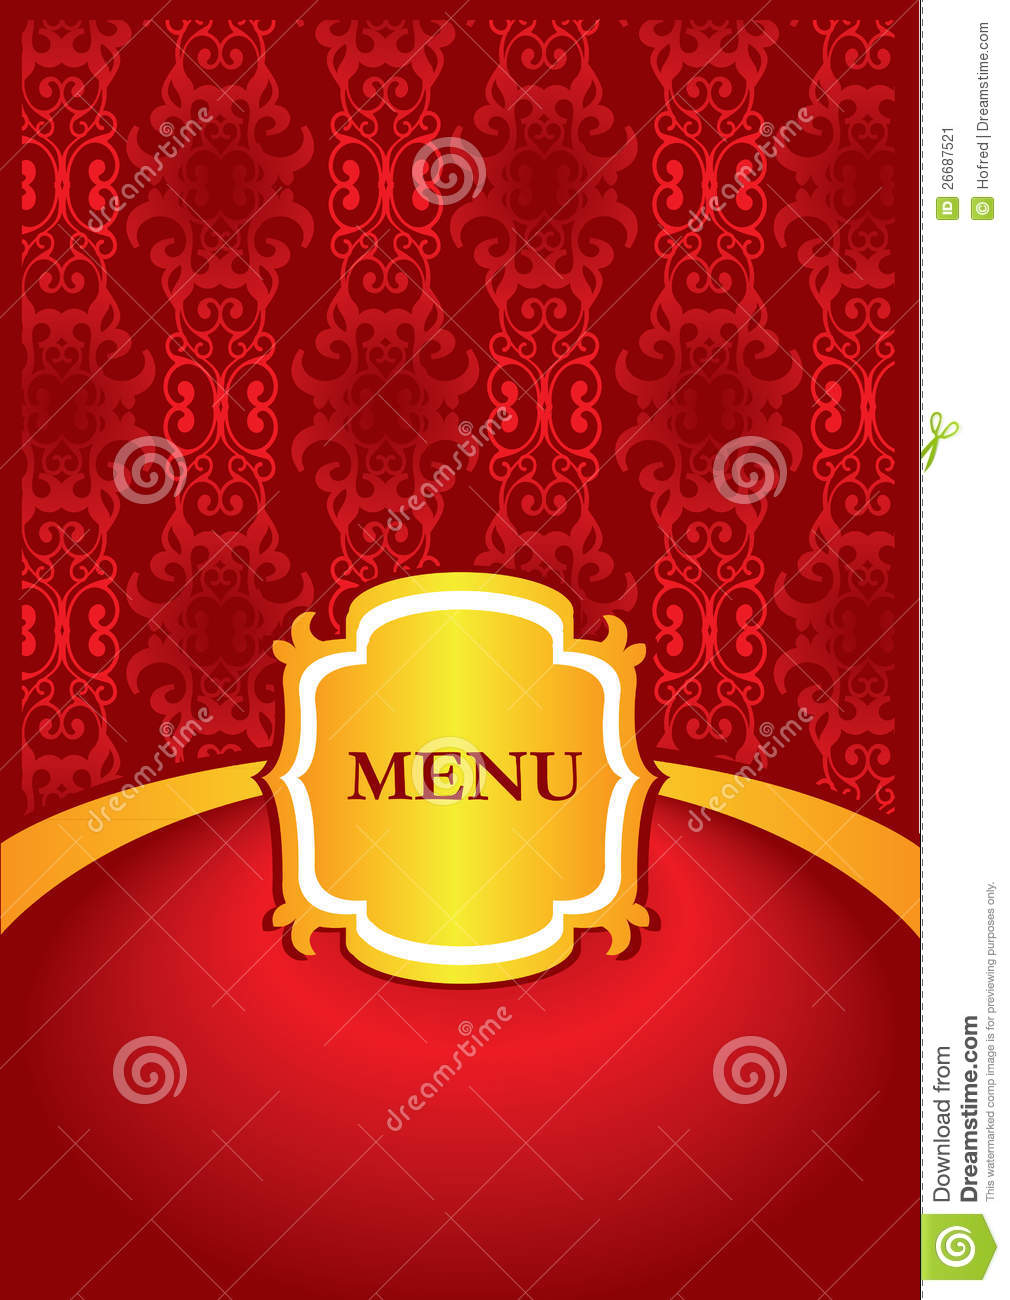 Menu cover design stock image